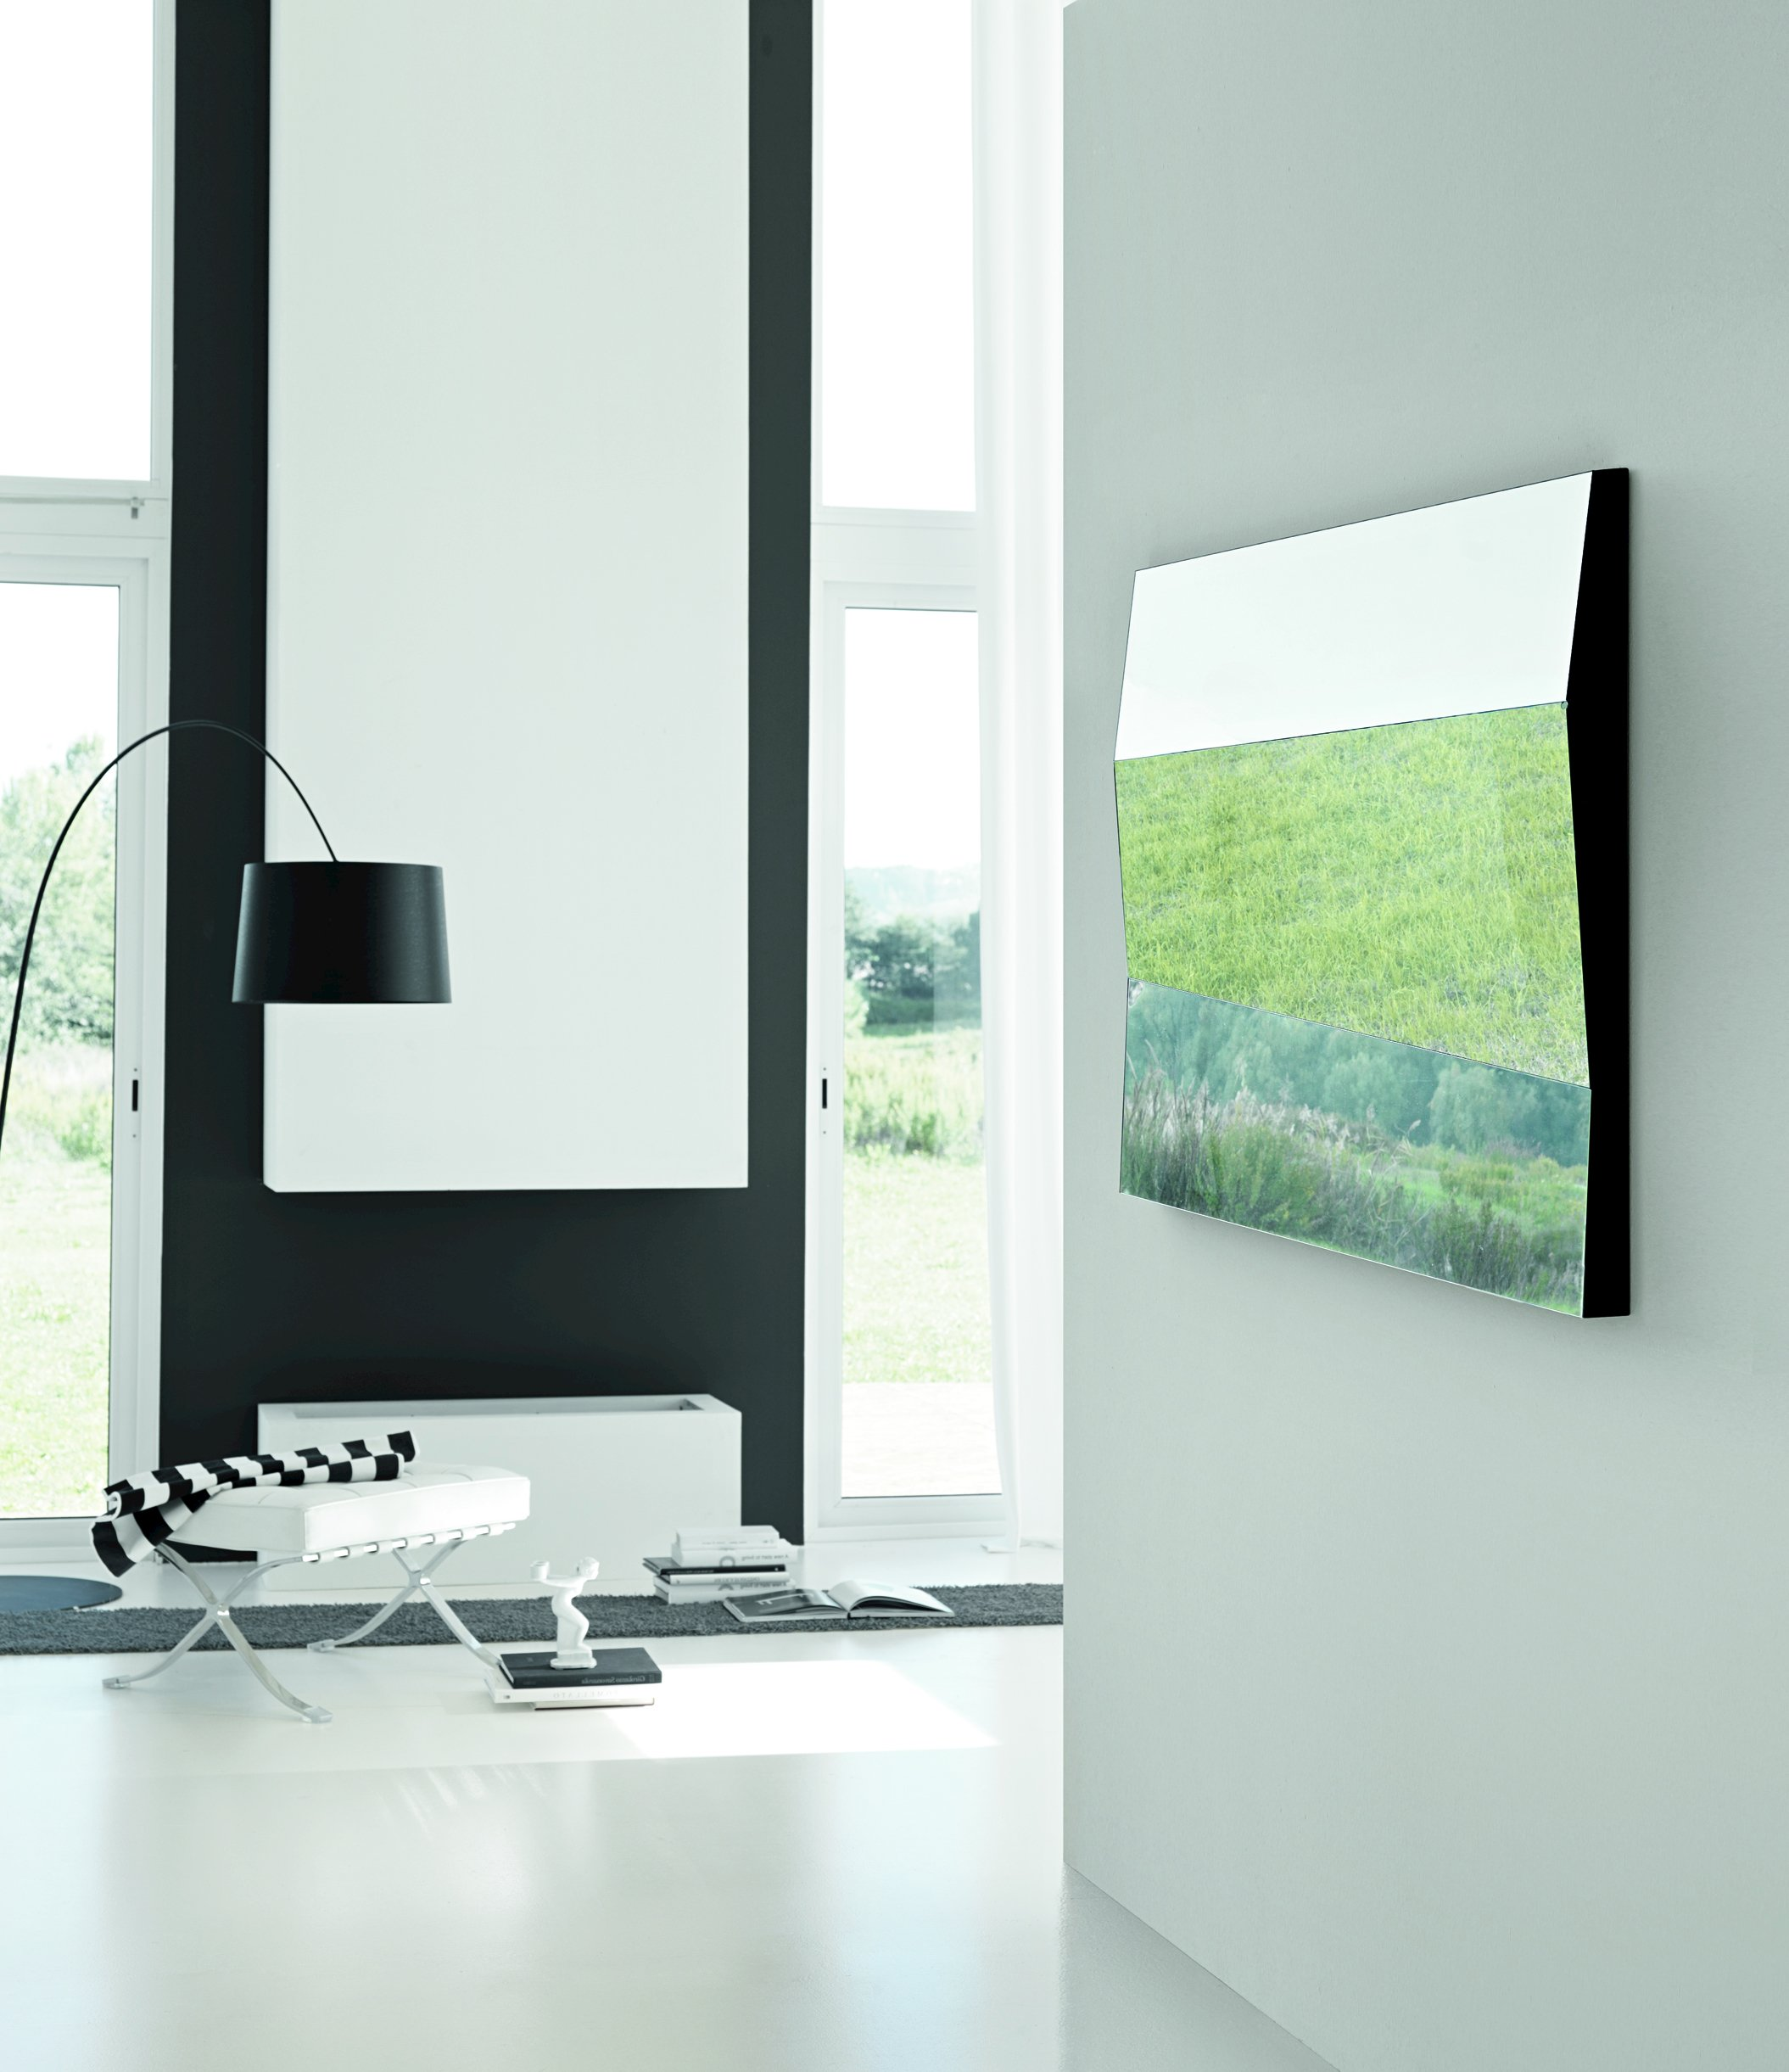 miroir mural rectangulaire autostima by t d tonelli. Black Bedroom Furniture Sets. Home Design Ideas